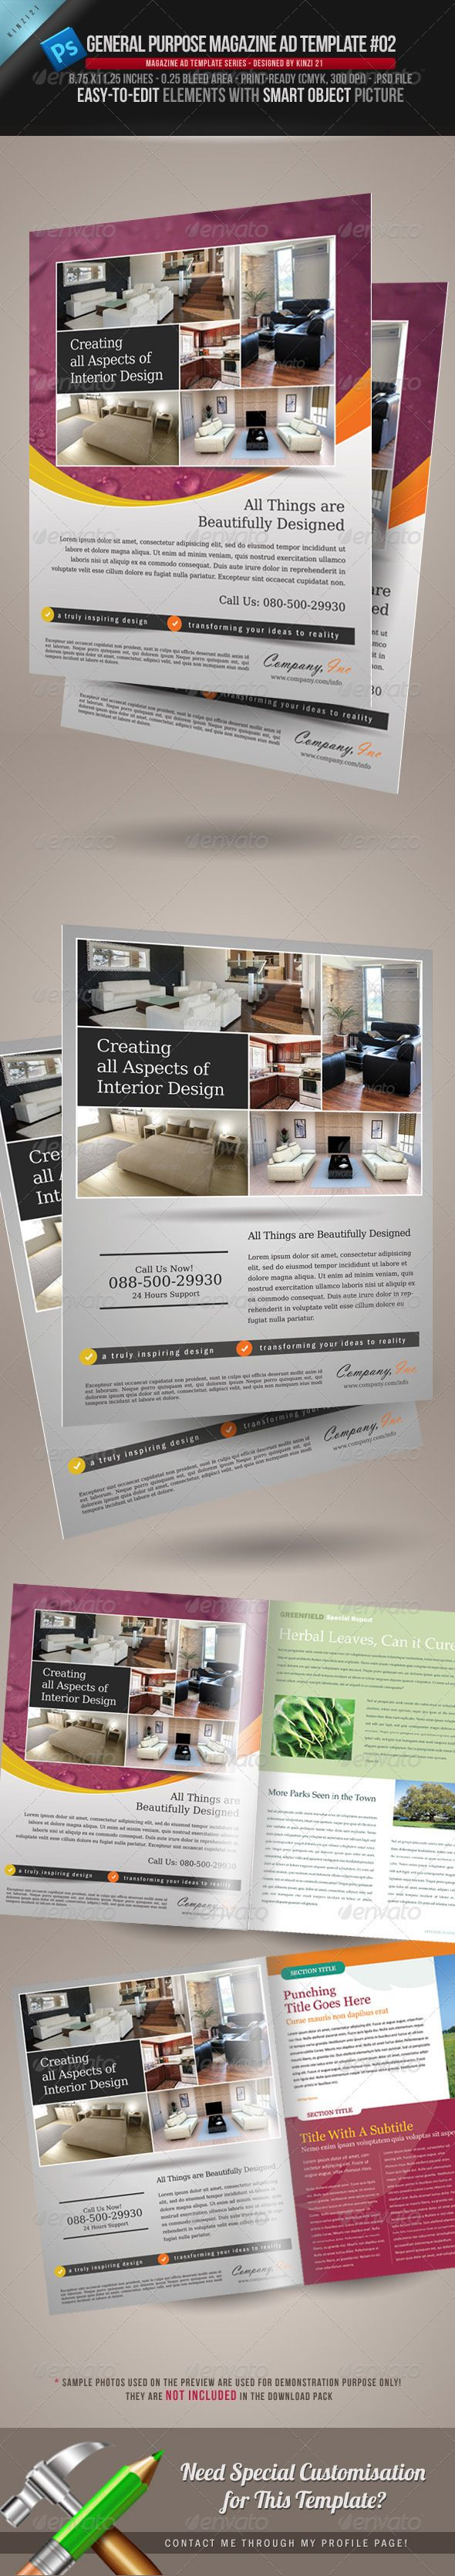 General Purpose Magazine Ad Template #02 | Fonts, Design styles ...